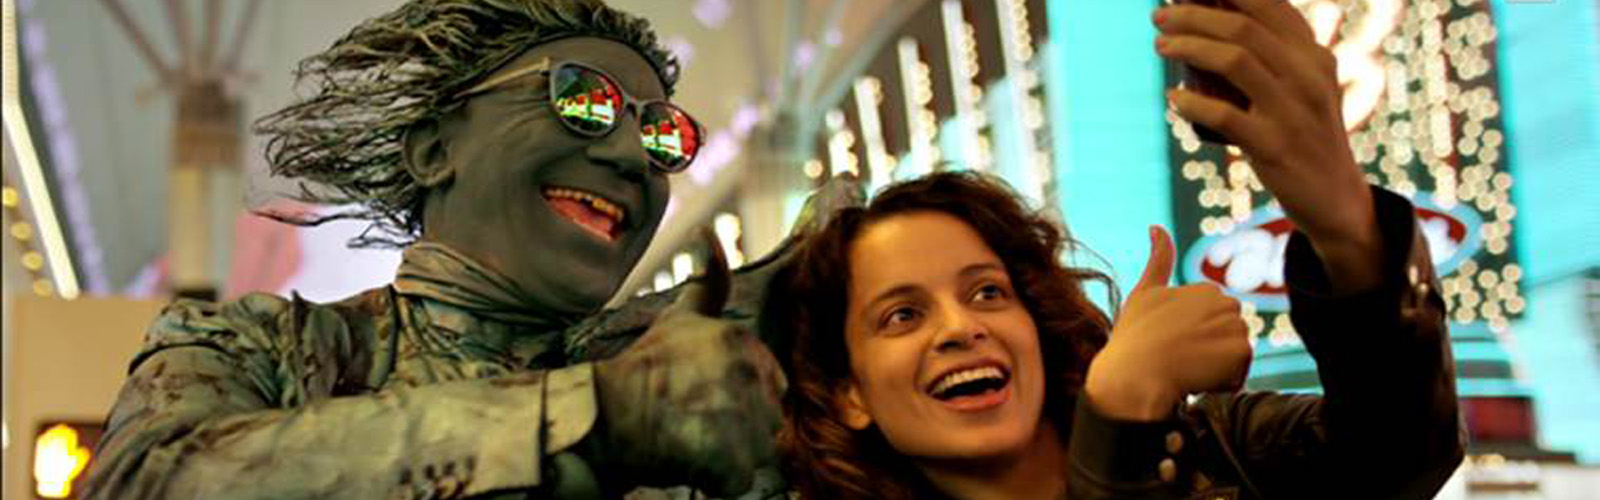 "Kangana's ""Simran"" has heart and a compelling tale to tell"